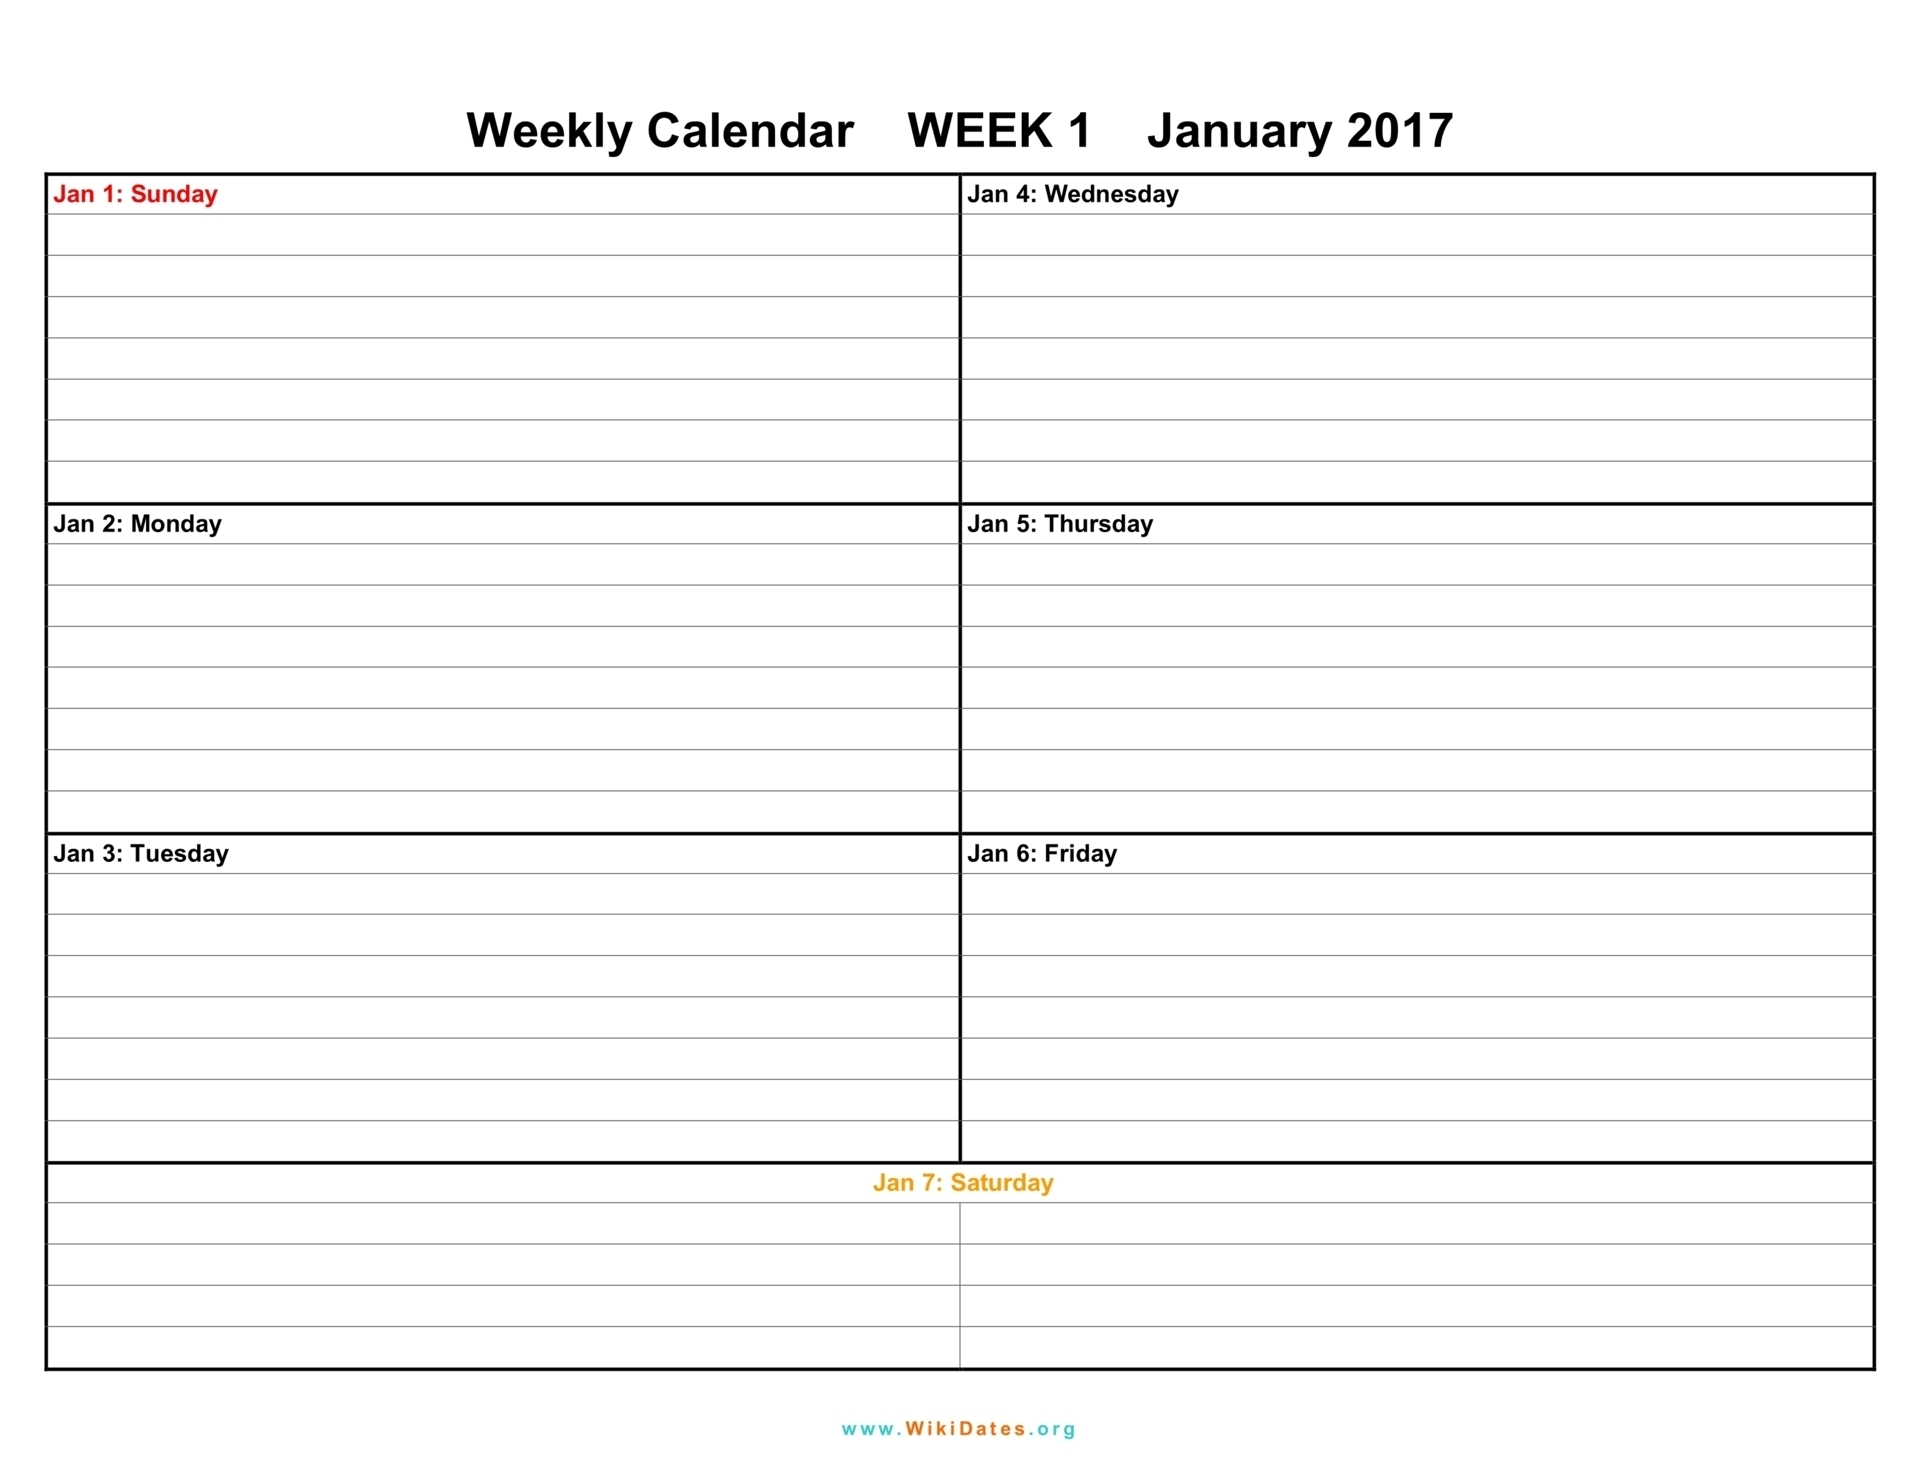 Calendar Weekly Printable - Hashtag Bg for Blank Lined Weekly Printable Calendar